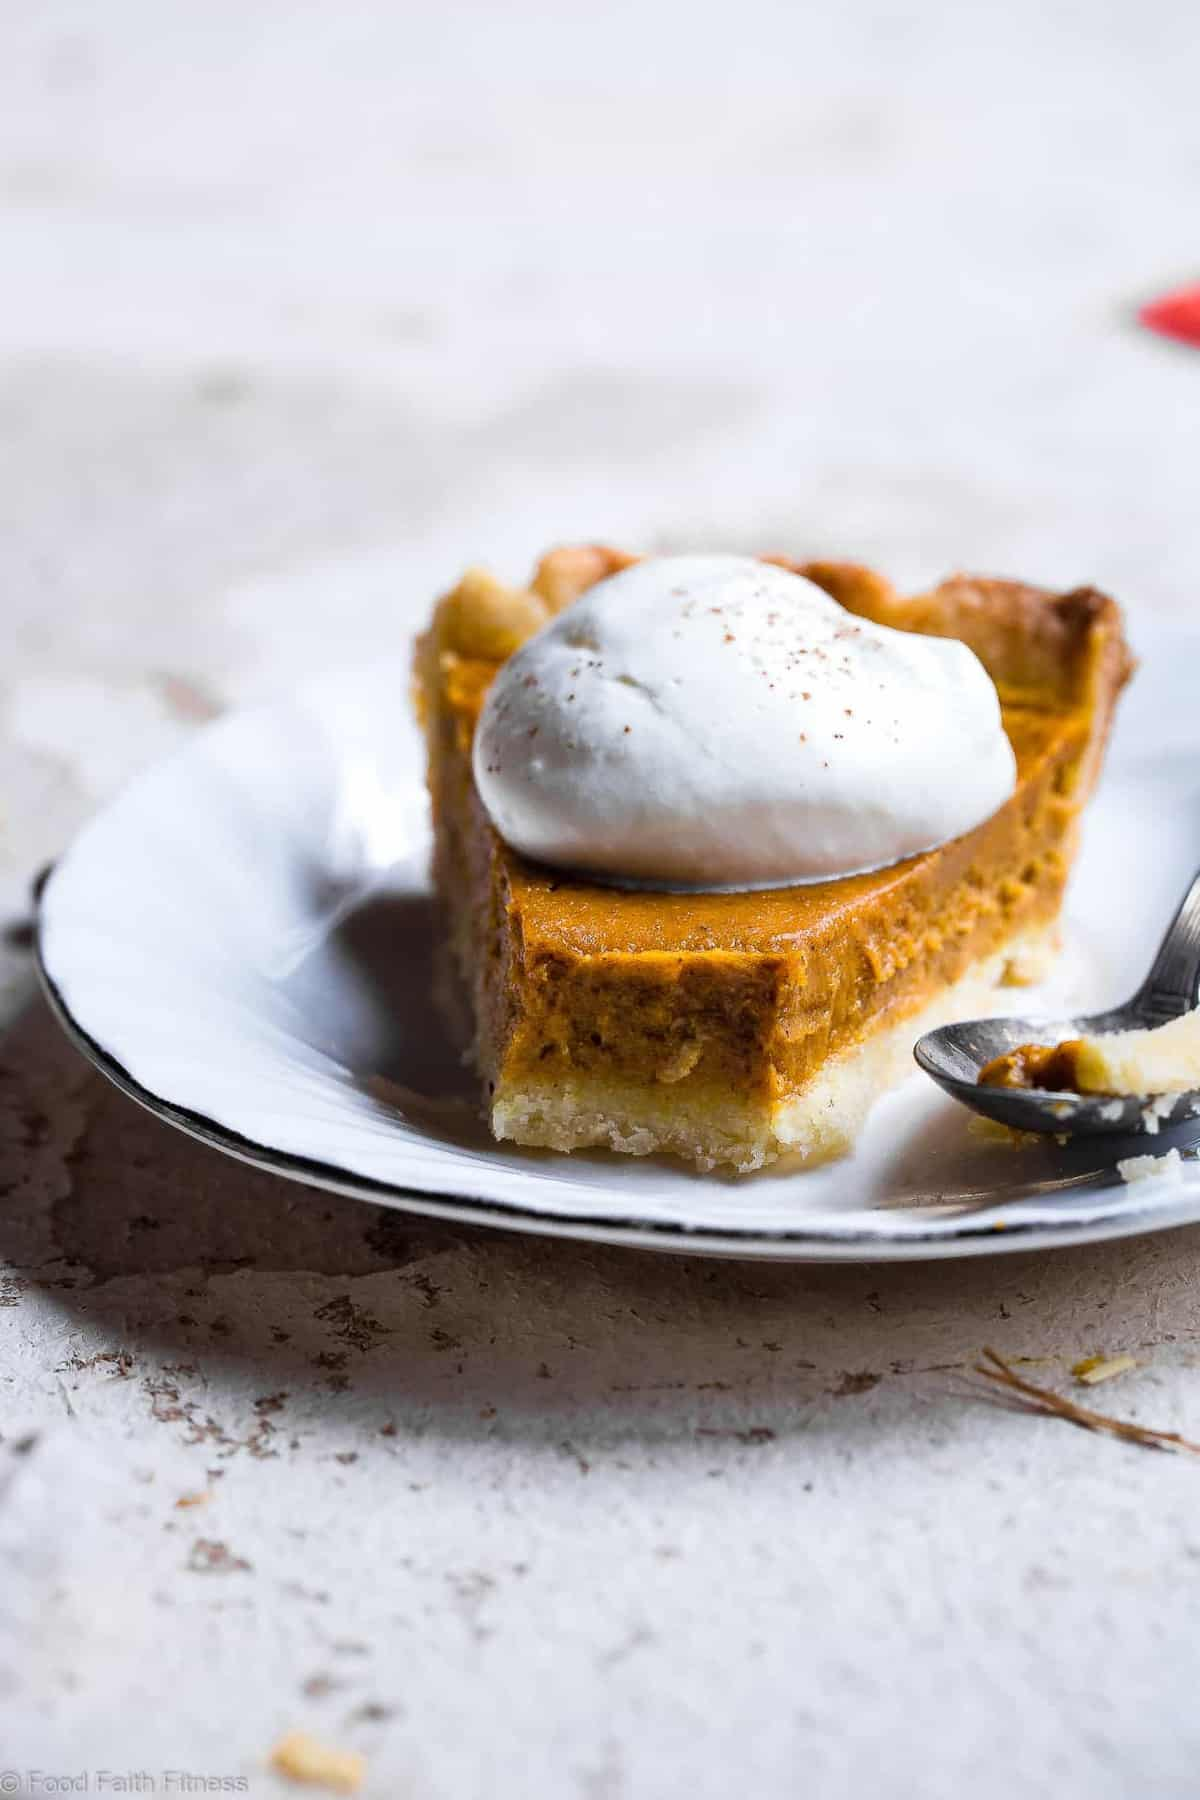 The BEST Low Carb Sugar Free Pumpkin Pie - This paleo friendly, sugar free and low carb pumpkin pie recipe is SO delicious, you will never know it's dairy and gluten free and only 200 calories a slice! Everyone will want this recipe! | #Foodfaithfitness | #Glutenfree #Sugarfree #Paleo #Lowcarb #Healthy